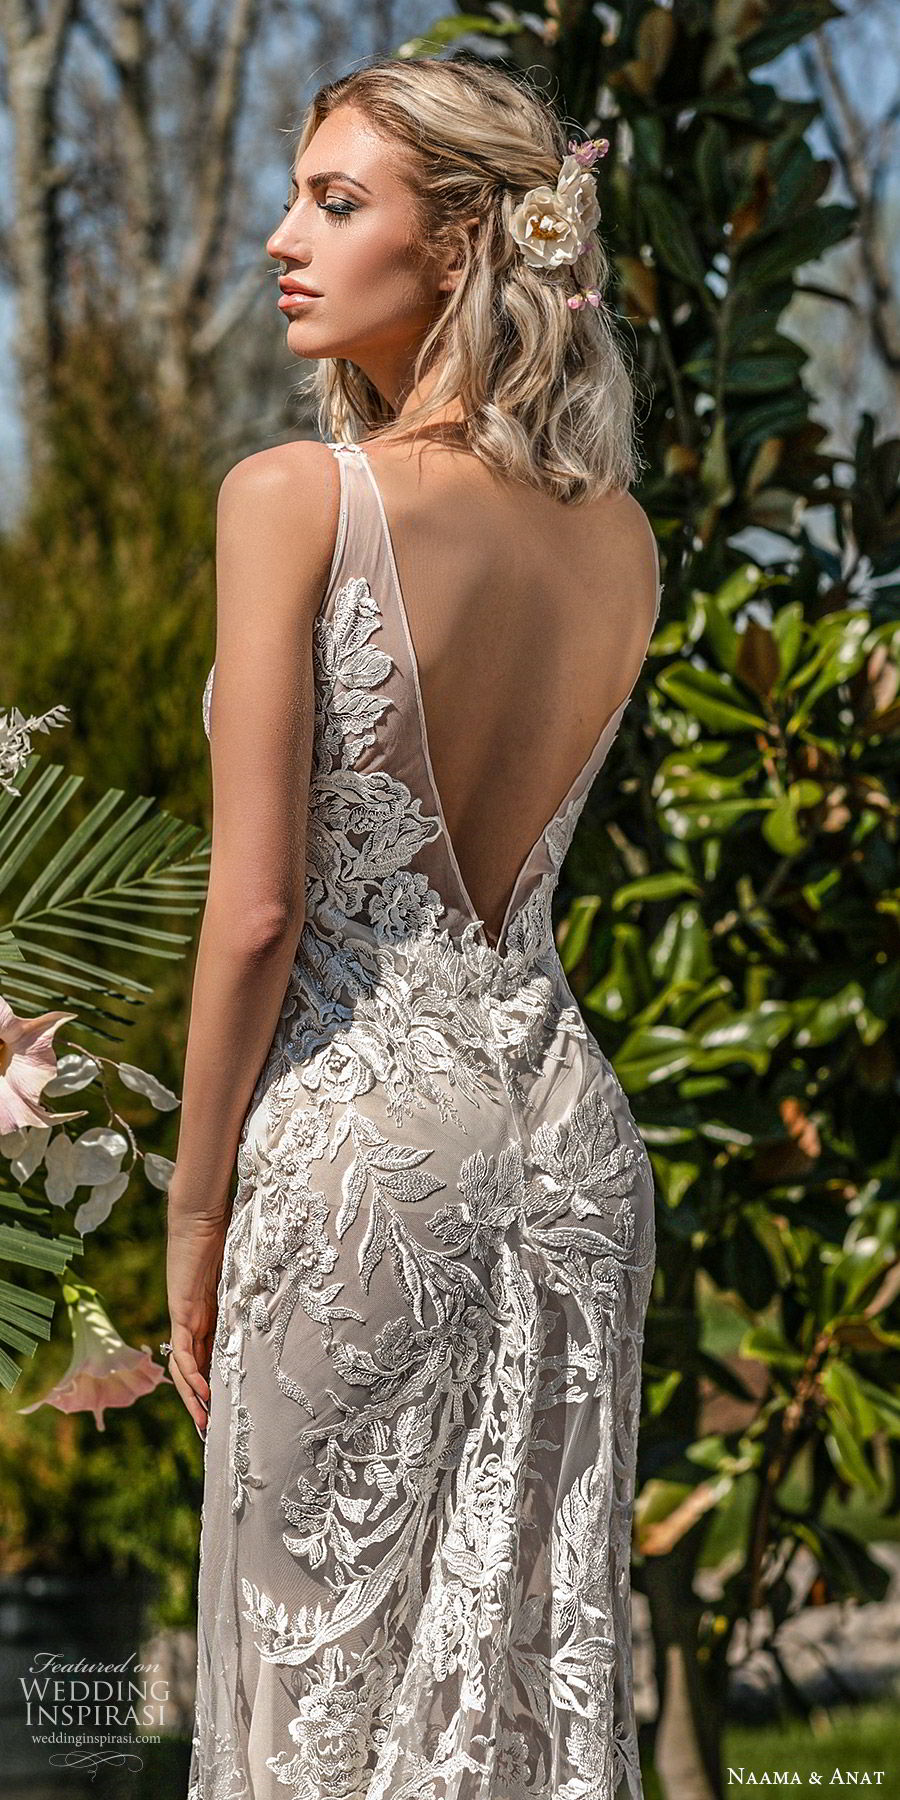 naama anat spring 2020 bridal sleeveless sheer straps deep v neckline illusion bodice fully embellished lace a line ball gown wedding dress (5) low back chapel train princess romantic zbv